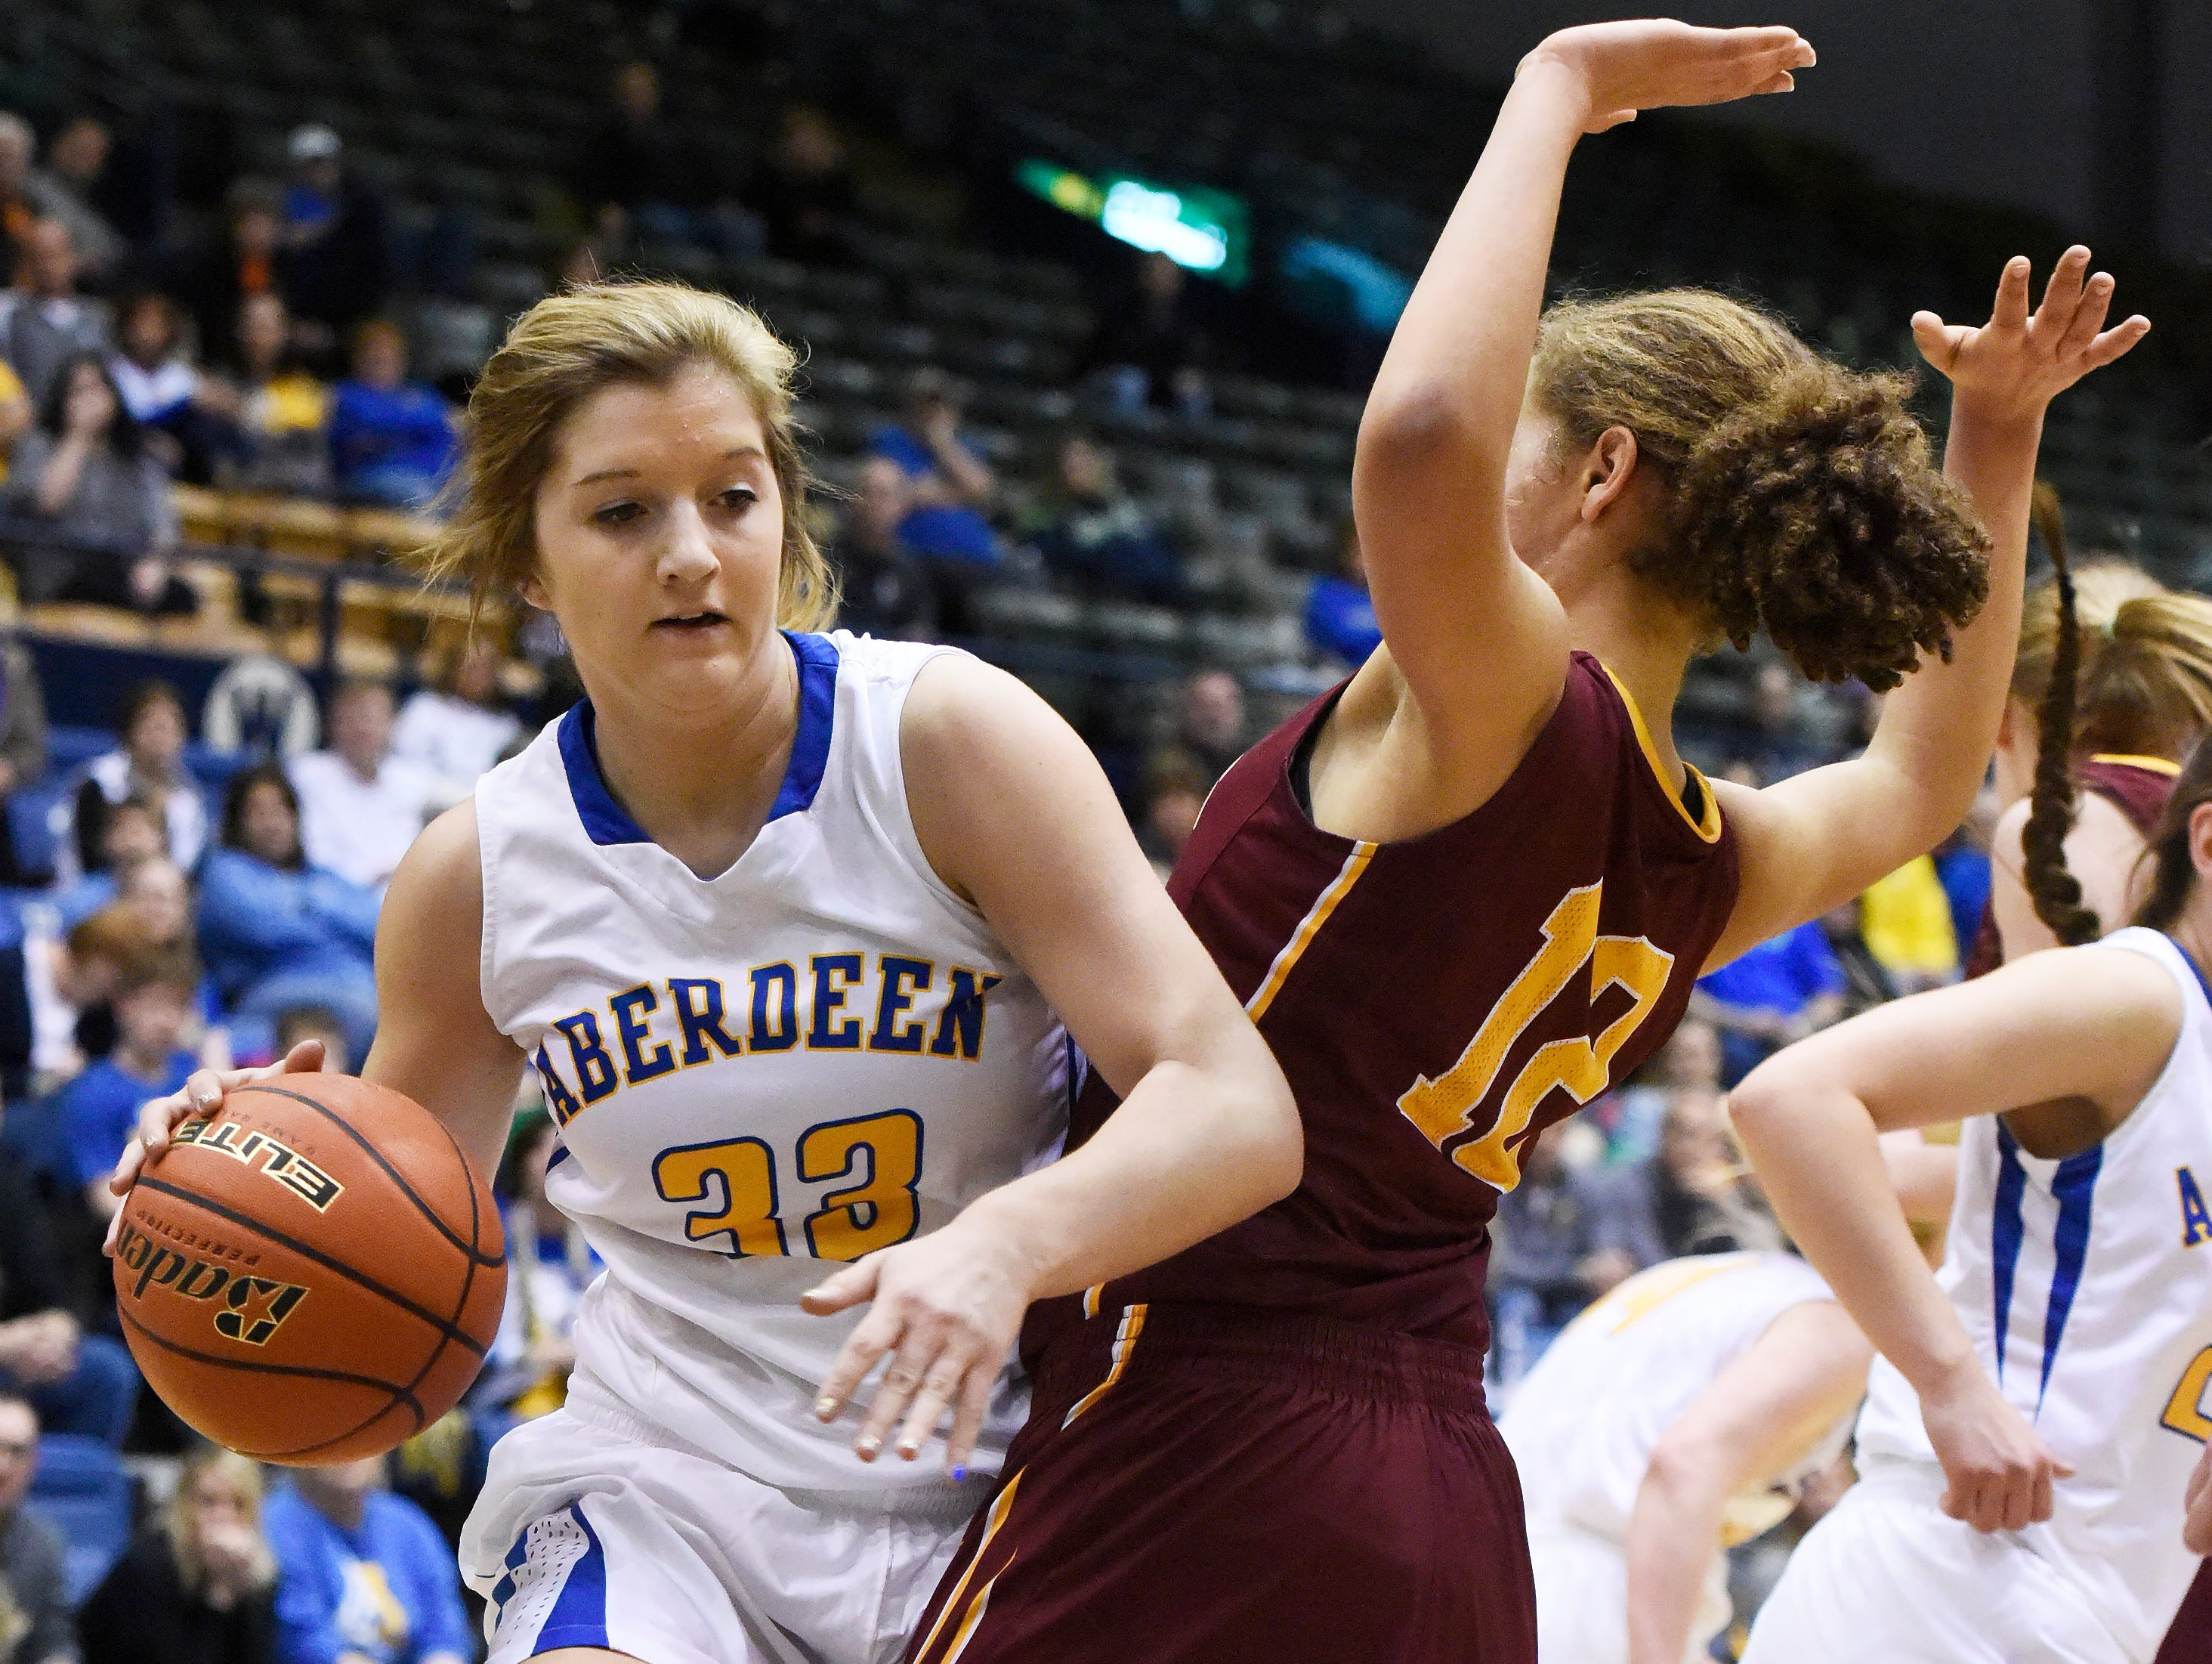 Aberdeen Central's Paiton Burckhard (33) pushes past Roosevelt's Kira Ward (12) with the ball in a state girls class AA basketball quarterfinal March 17.